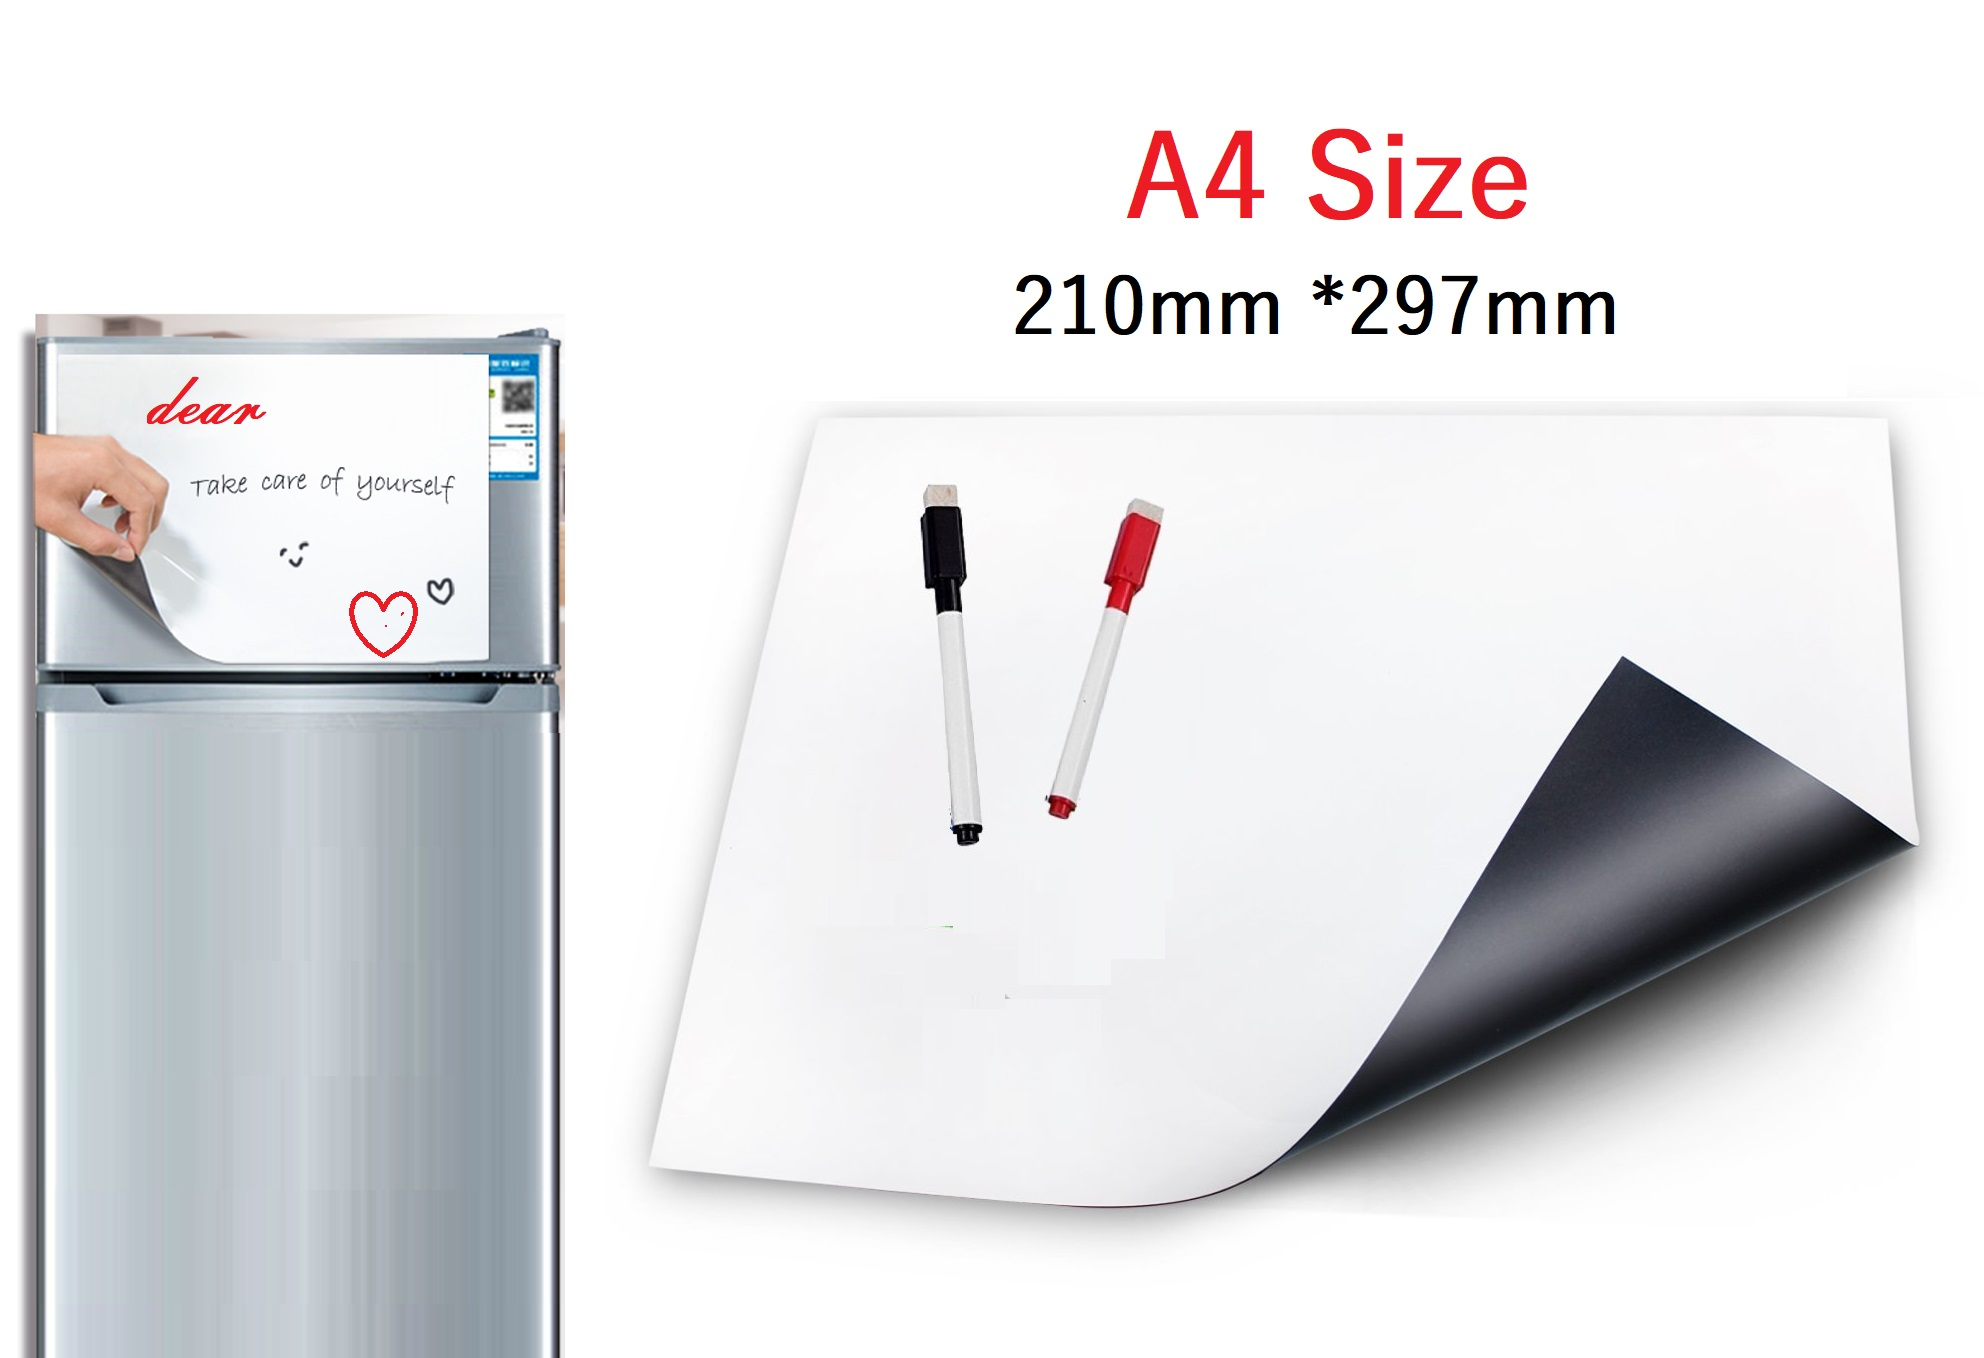 WonYean A4 Size Dry Erase White Board For Fridge Magnet Magnetic Whiteboard Kitchen Reminder Notepad Message Board 2 Marker Pen